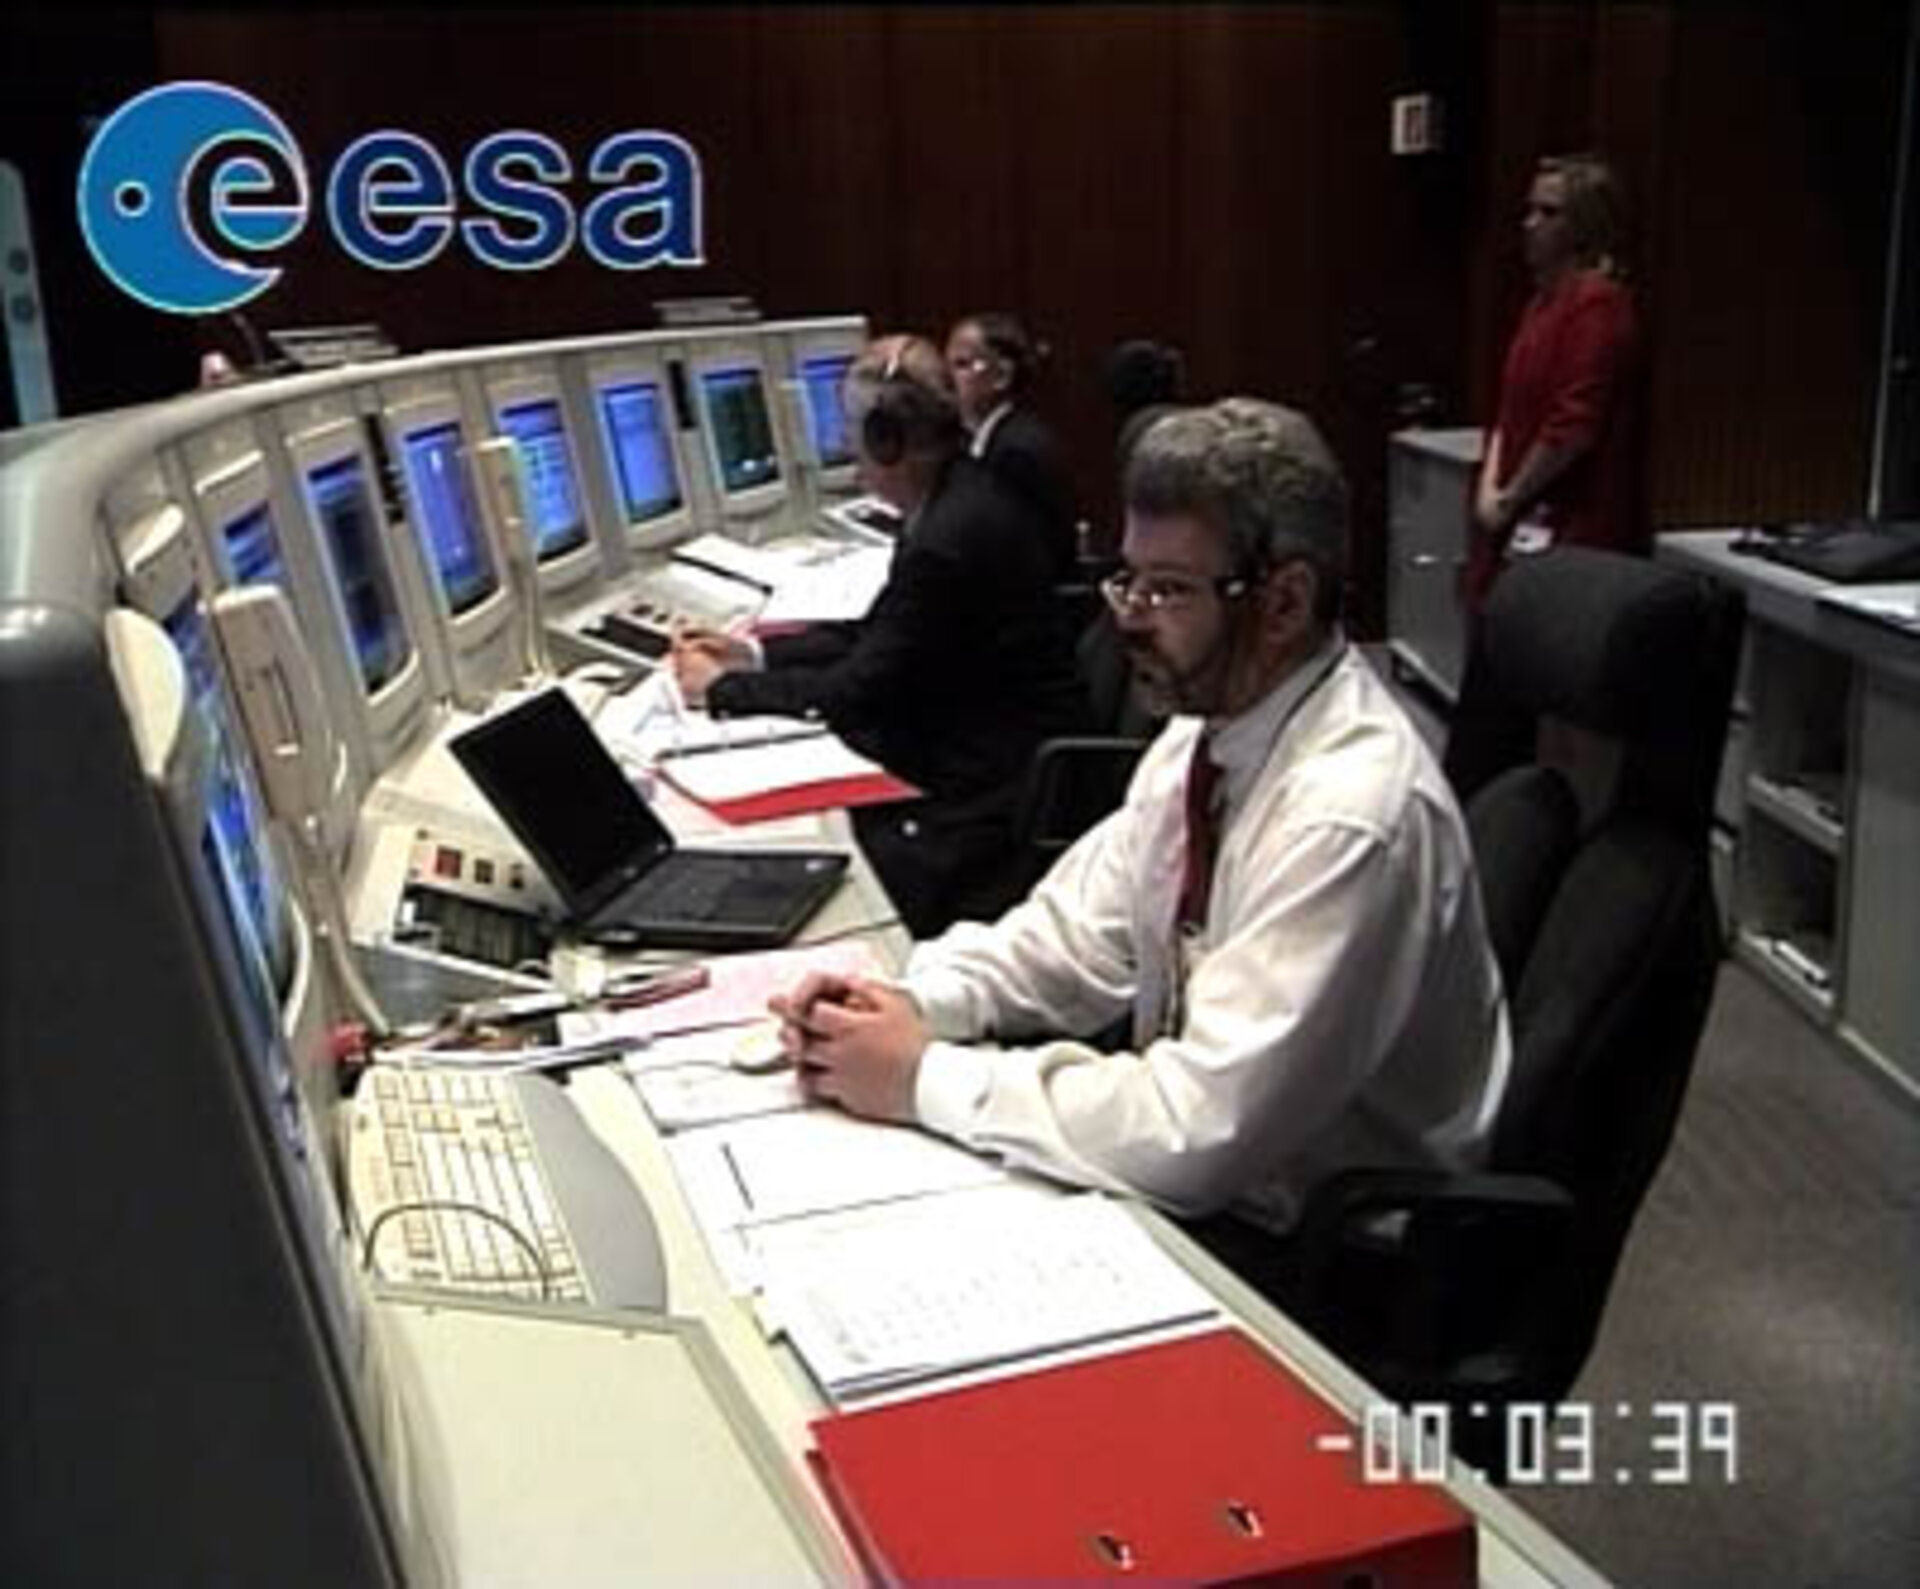 Contact with Mars Express was established by ESOC